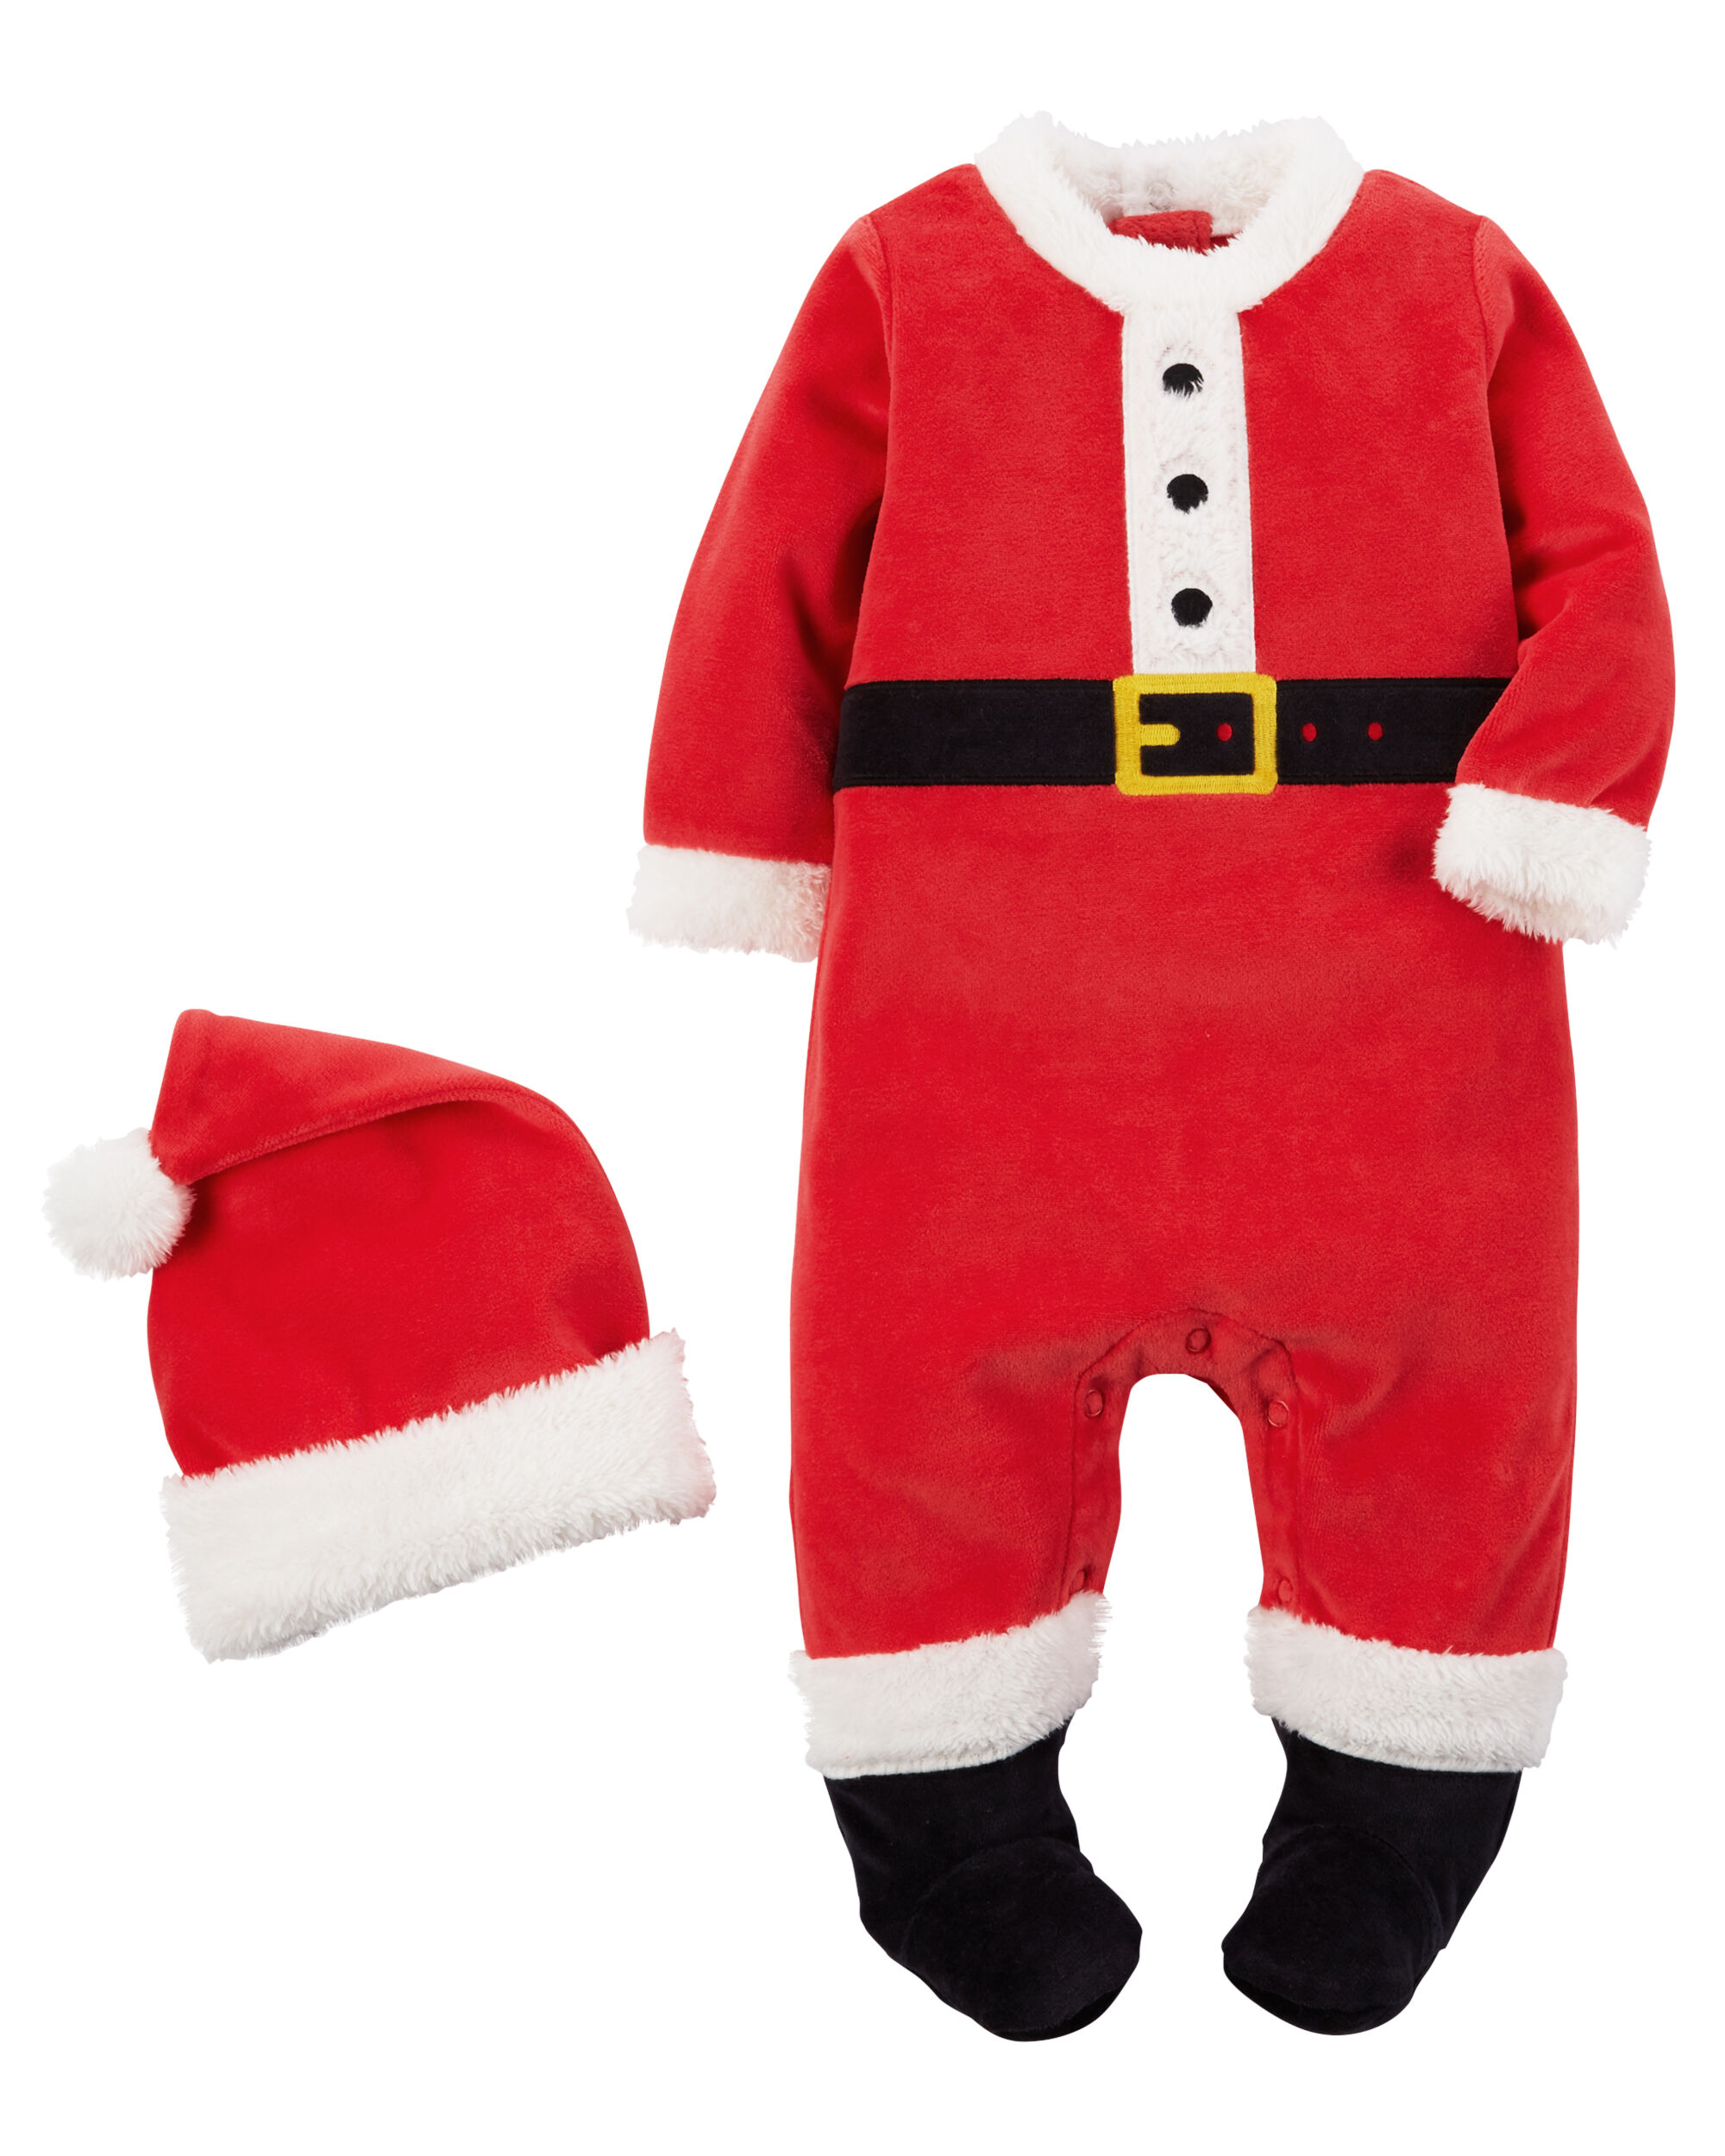 2 Piece Velour Santa Suit